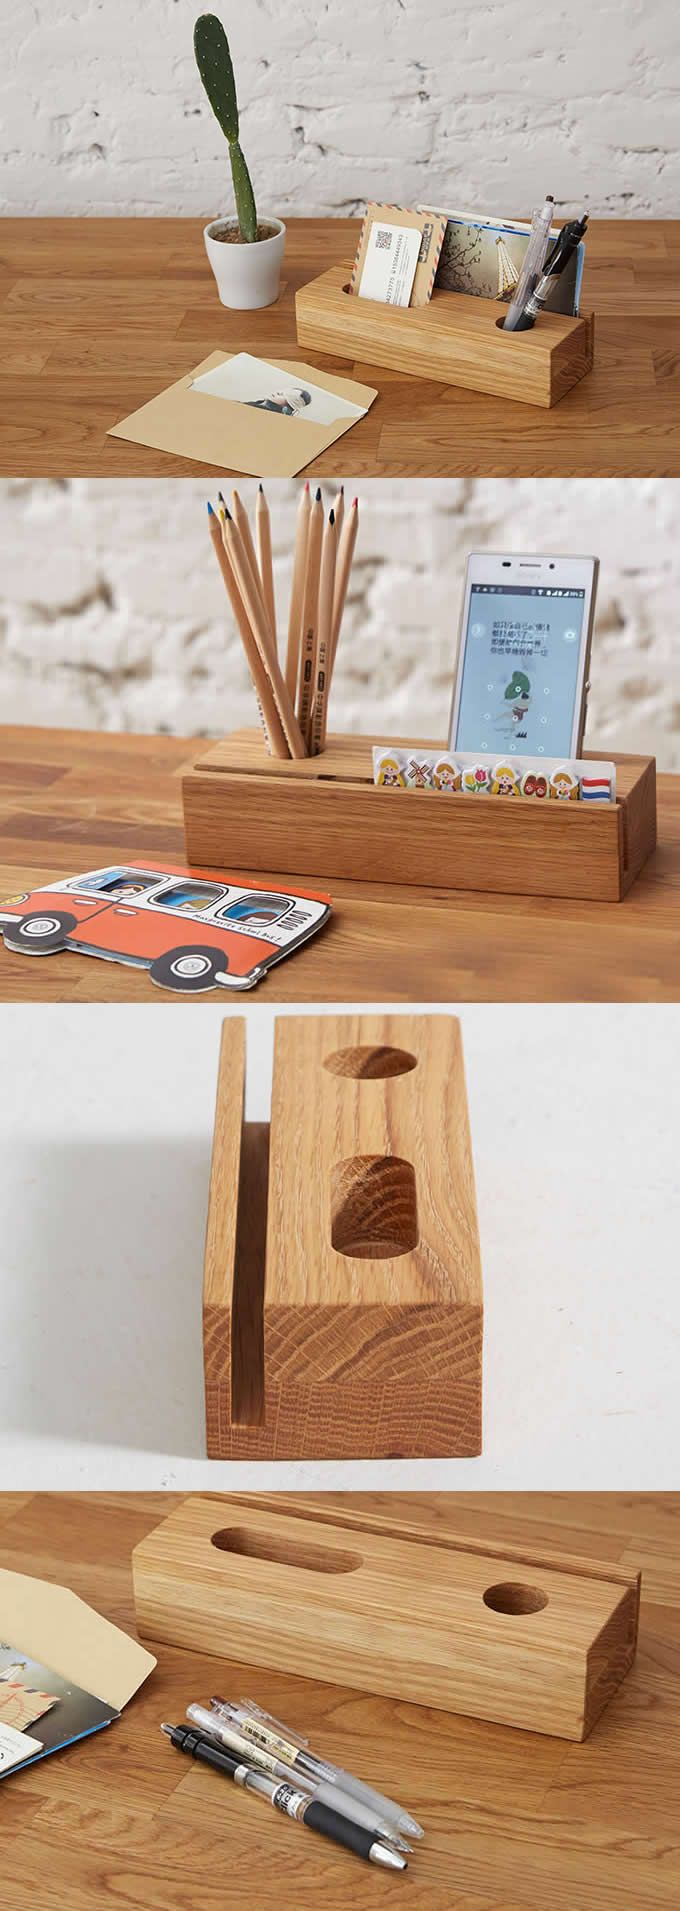 Superior Bamboo Wooden Office Desk Organizer Supplies Stationary Organizer Pen  Pencil Holder Stand IPhone Smart Phone Holder Dock Business Card Display  Stanu2026